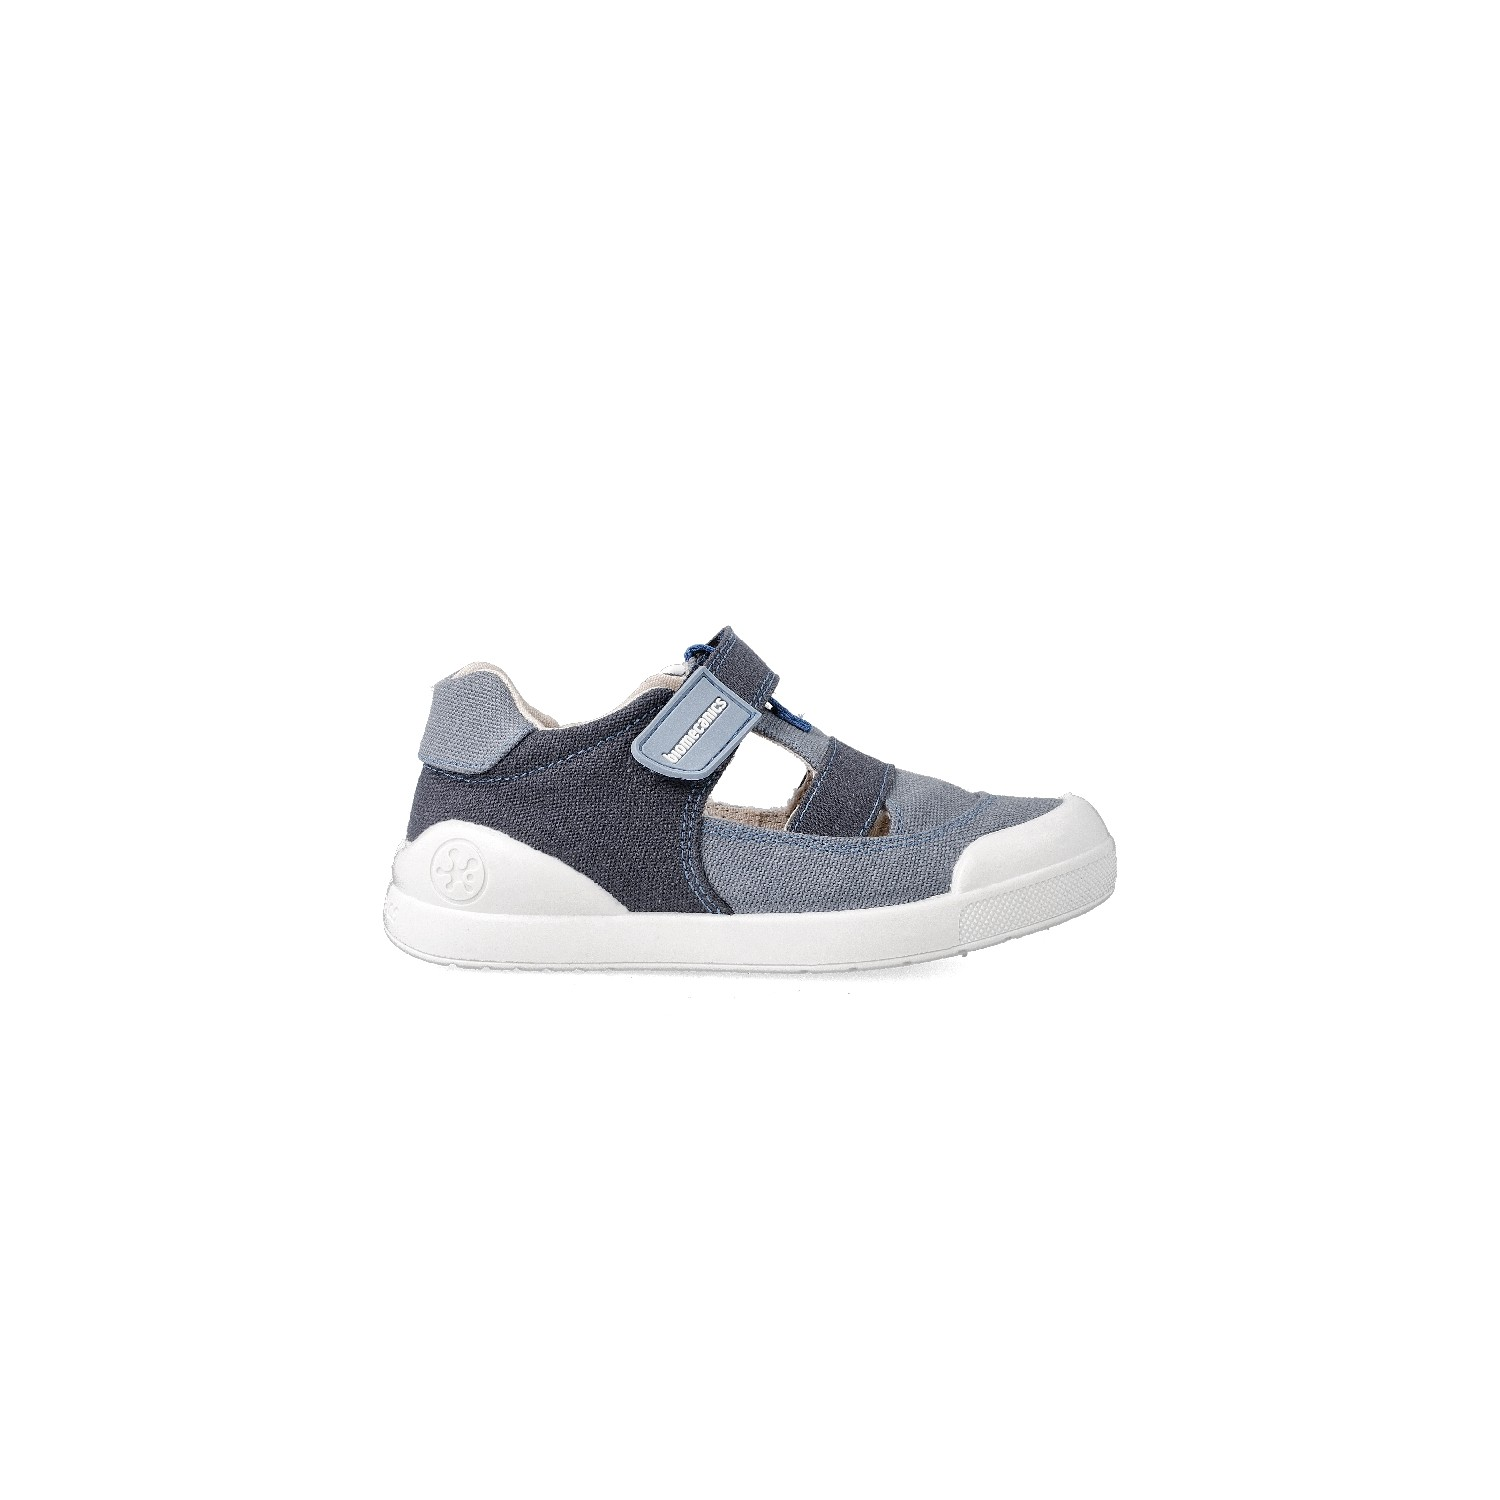 Canvas sneakers for boy Leonel